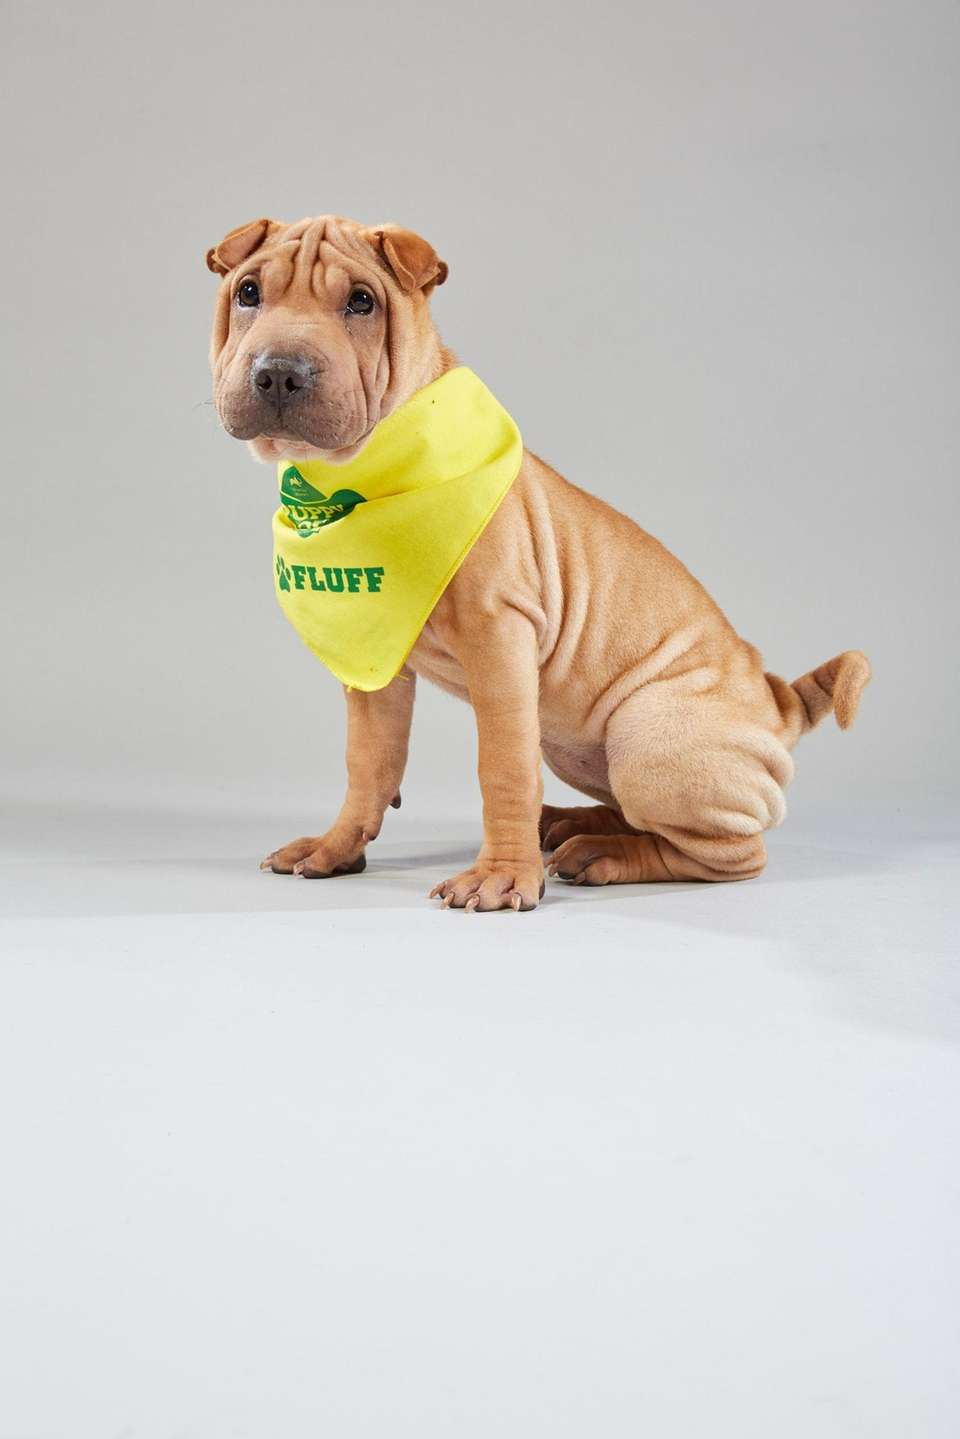 Puppy portrait for Puppy Bowl XV